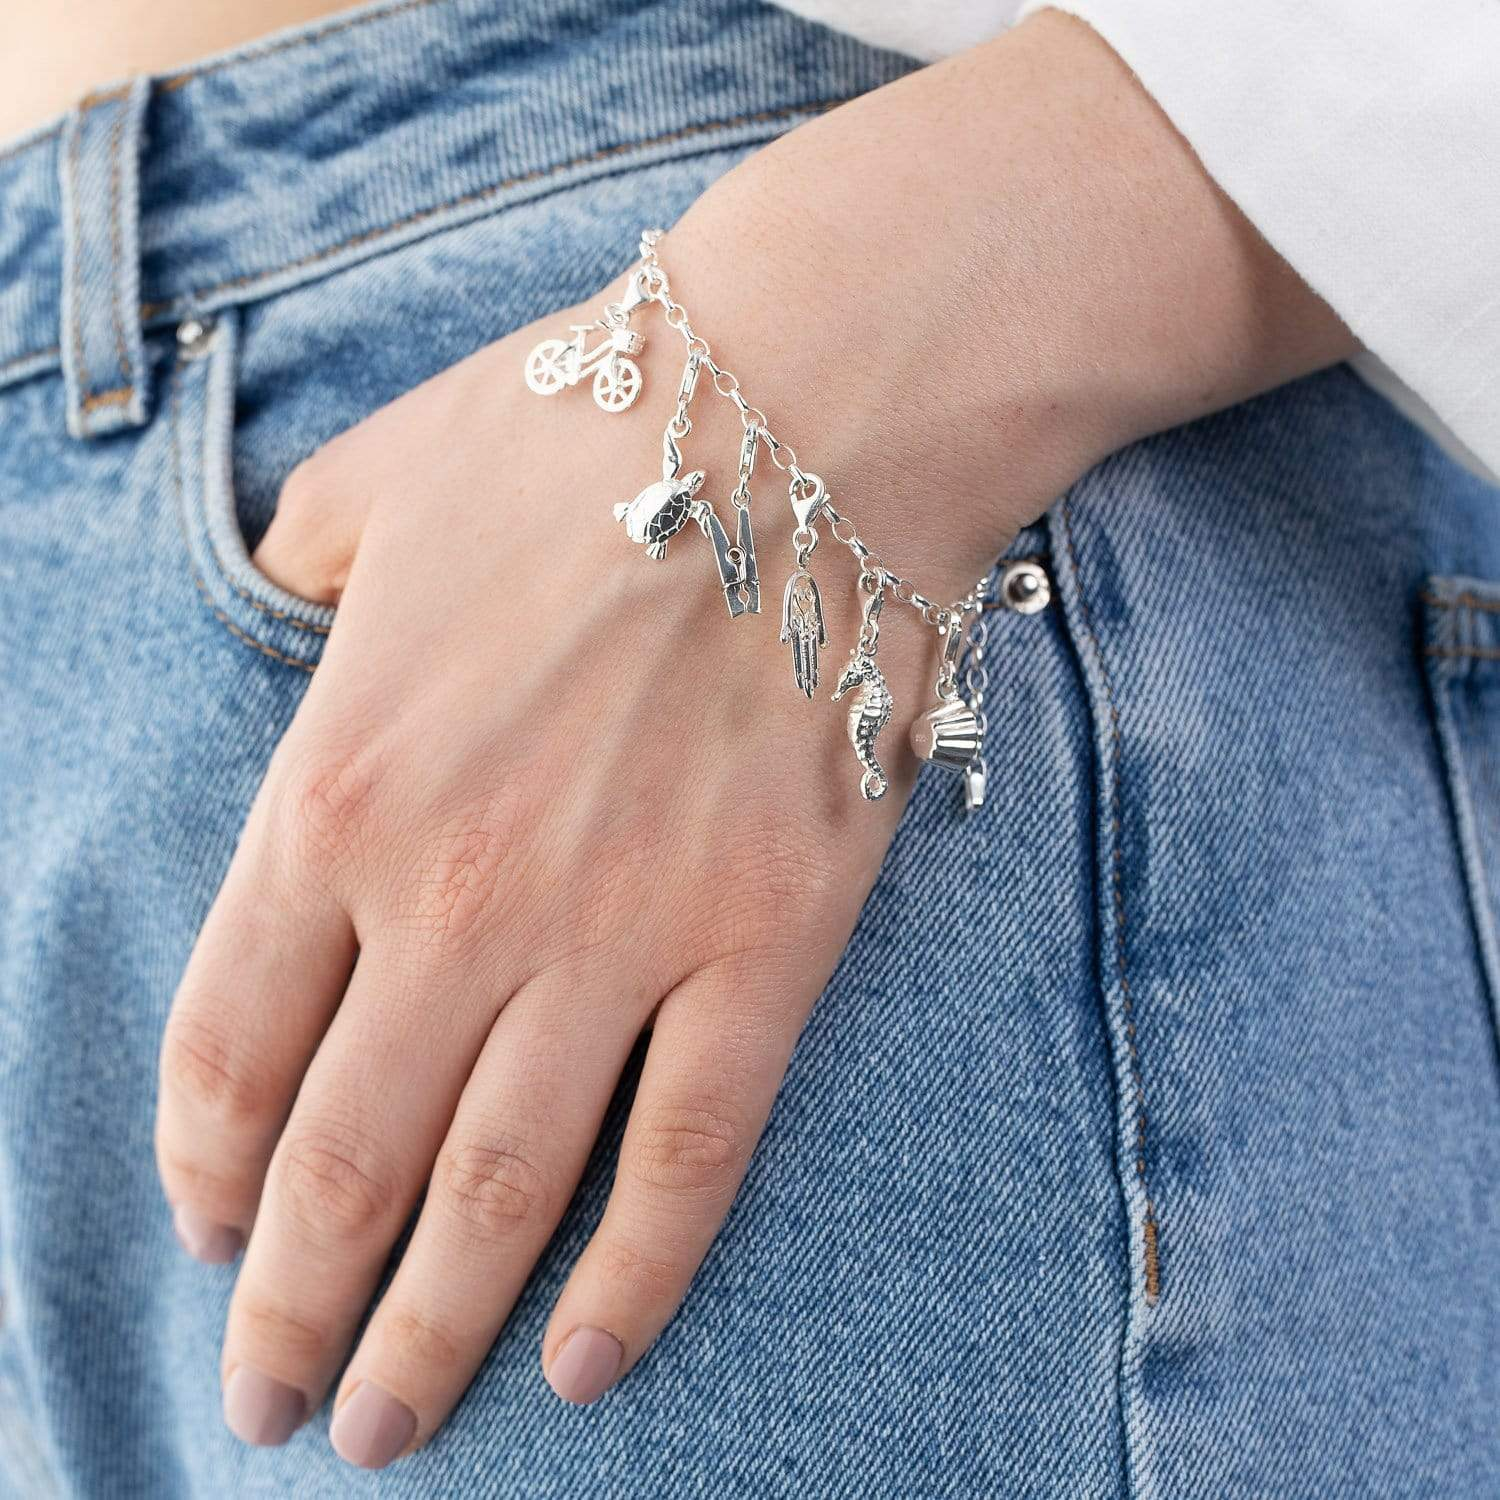 Silver Charm Bracelet - Lily Charmed